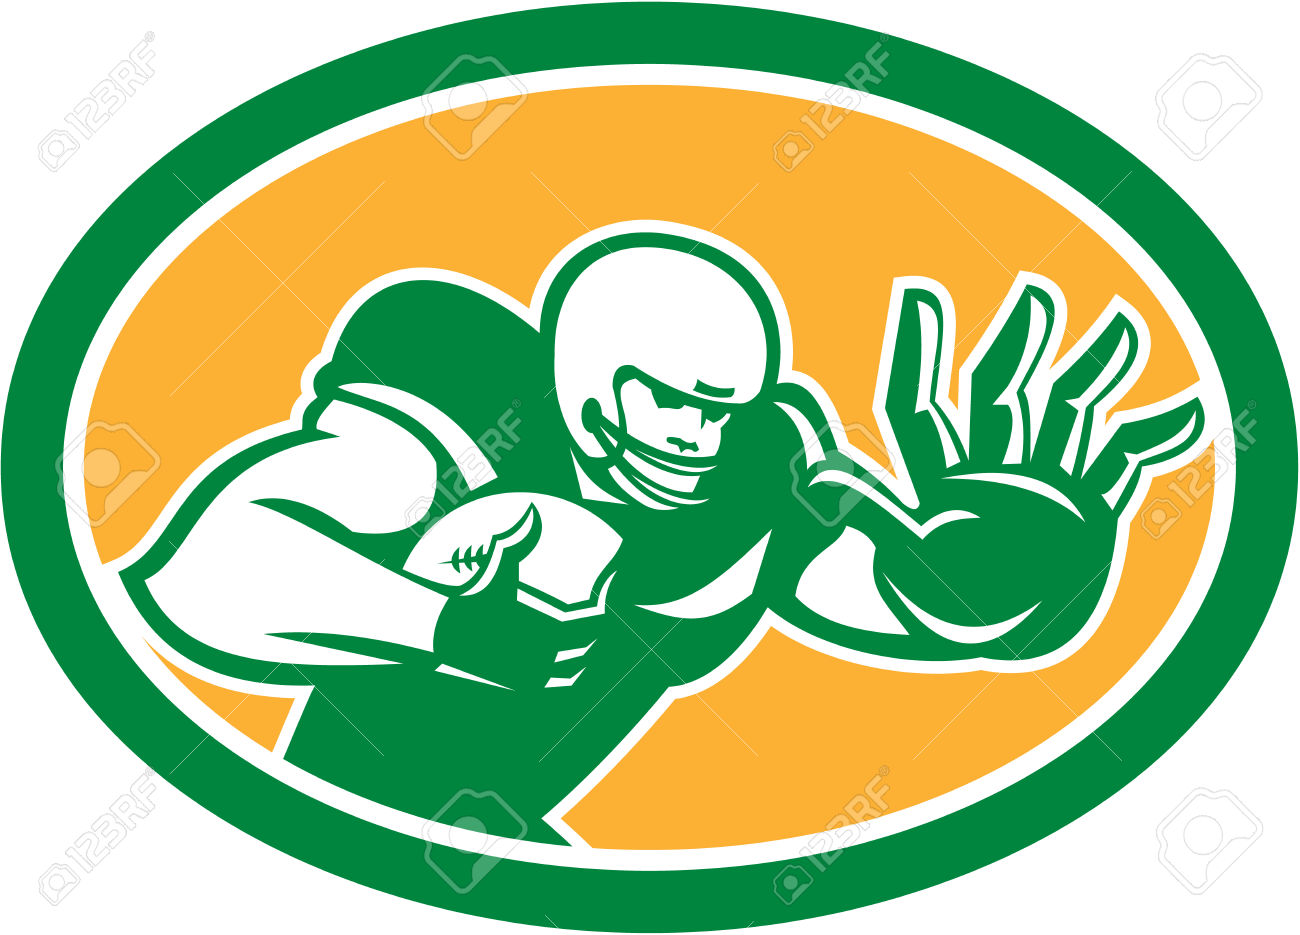 Illustration Of An American Football Gridiron Player Holding.